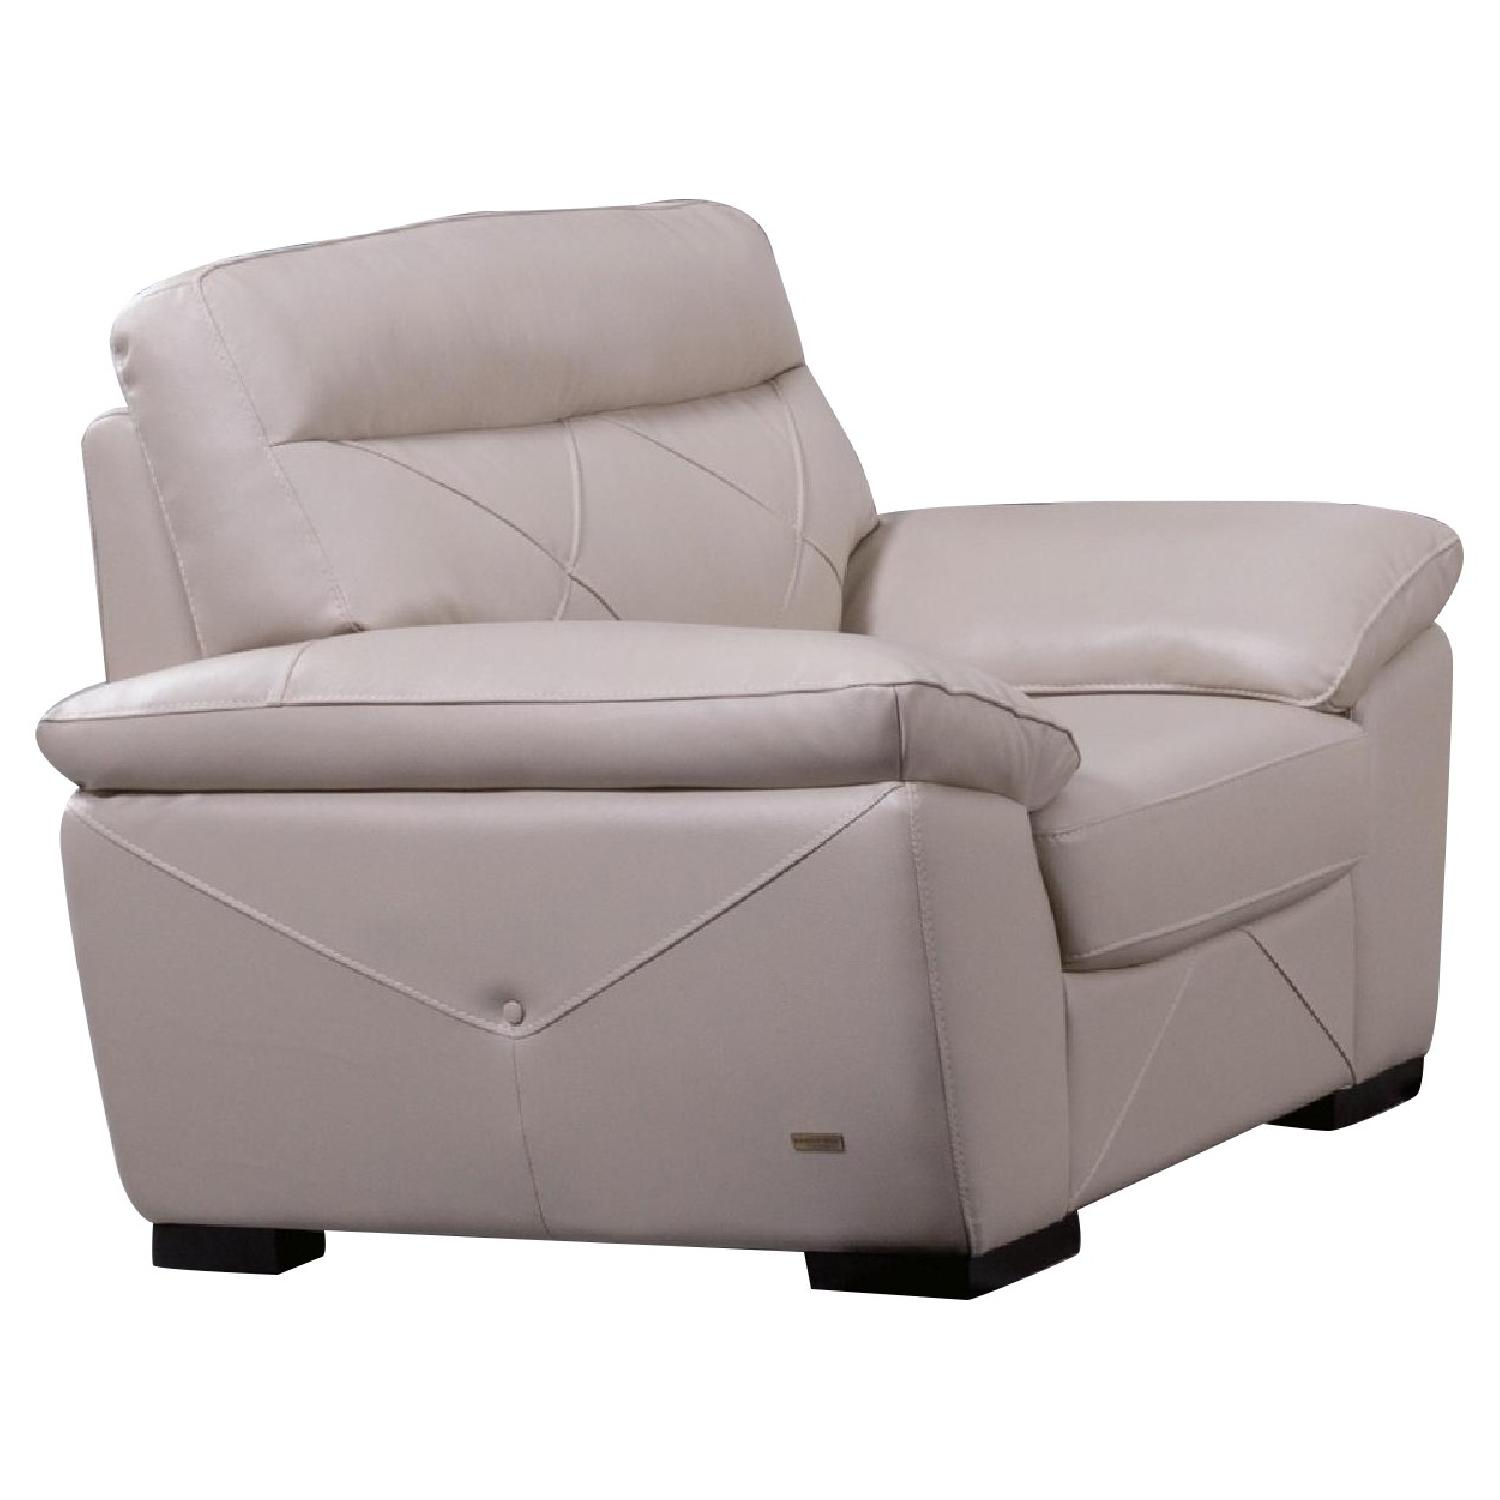 Modern Style Arm Chair in Taupe Color Top Grain Leather w/ Matching Faux Leather Padded Headrests & Tufted Button Sides